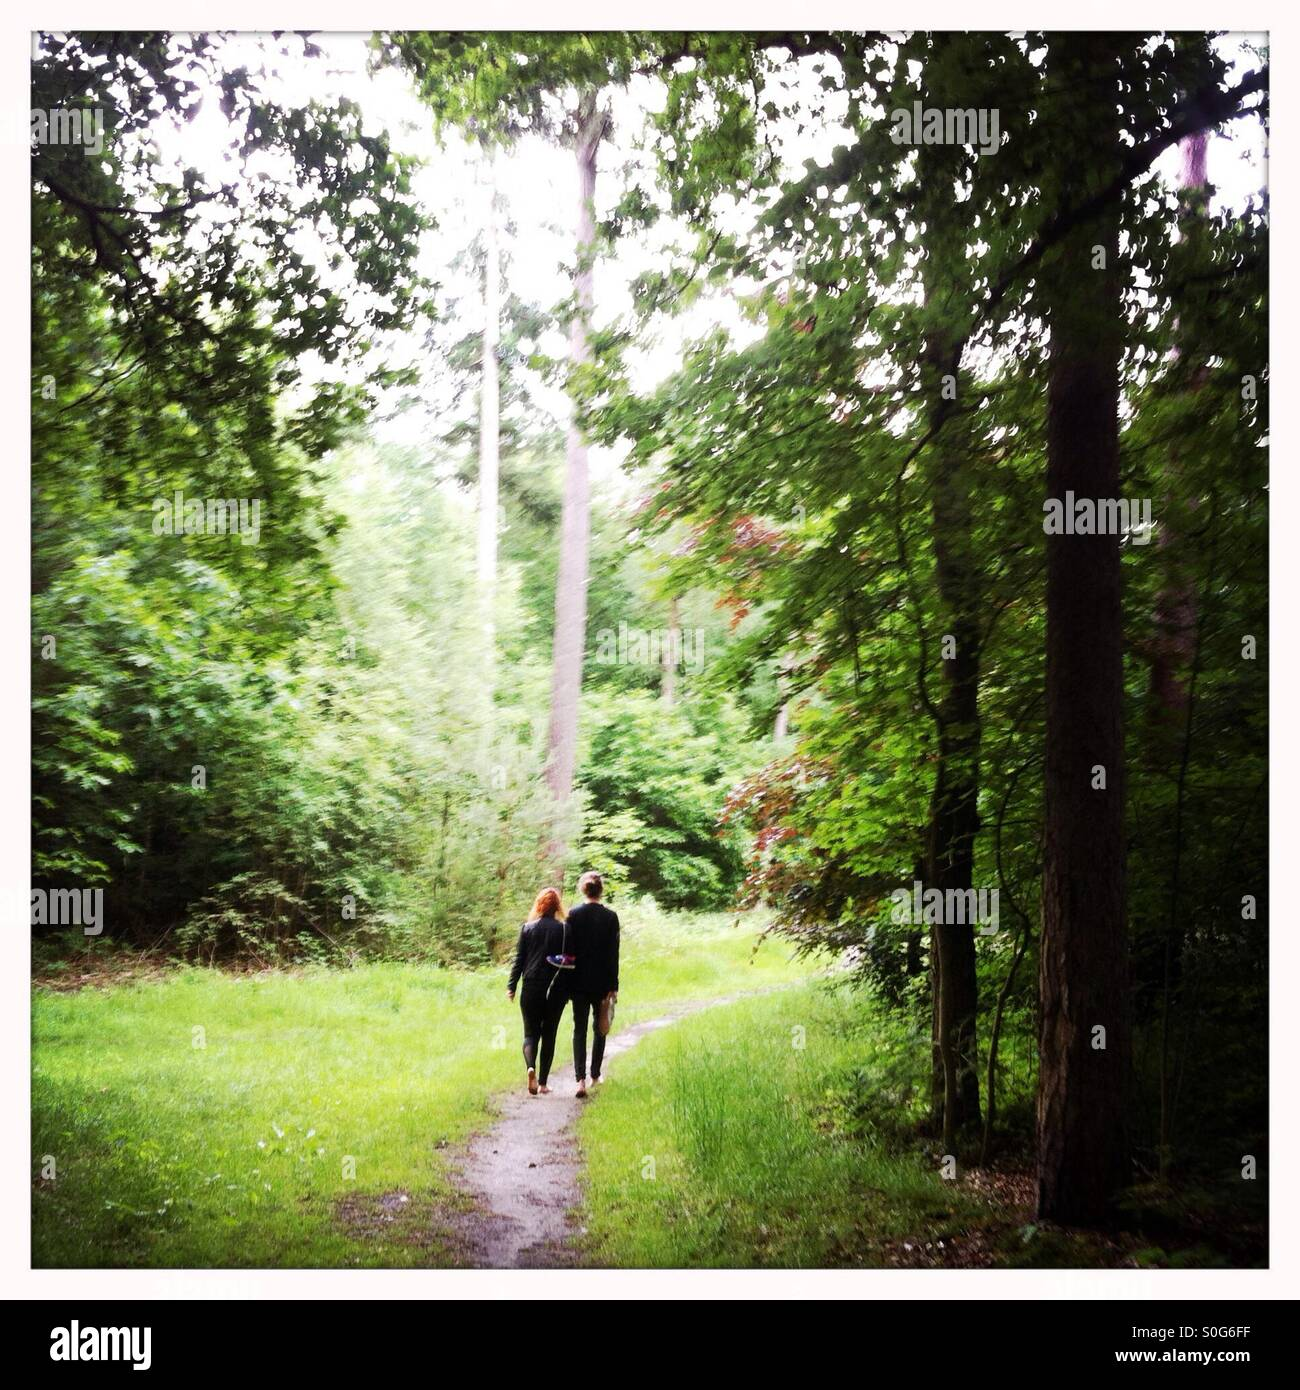 Boy and girl walking together in a forest on bare feet - Stock Image